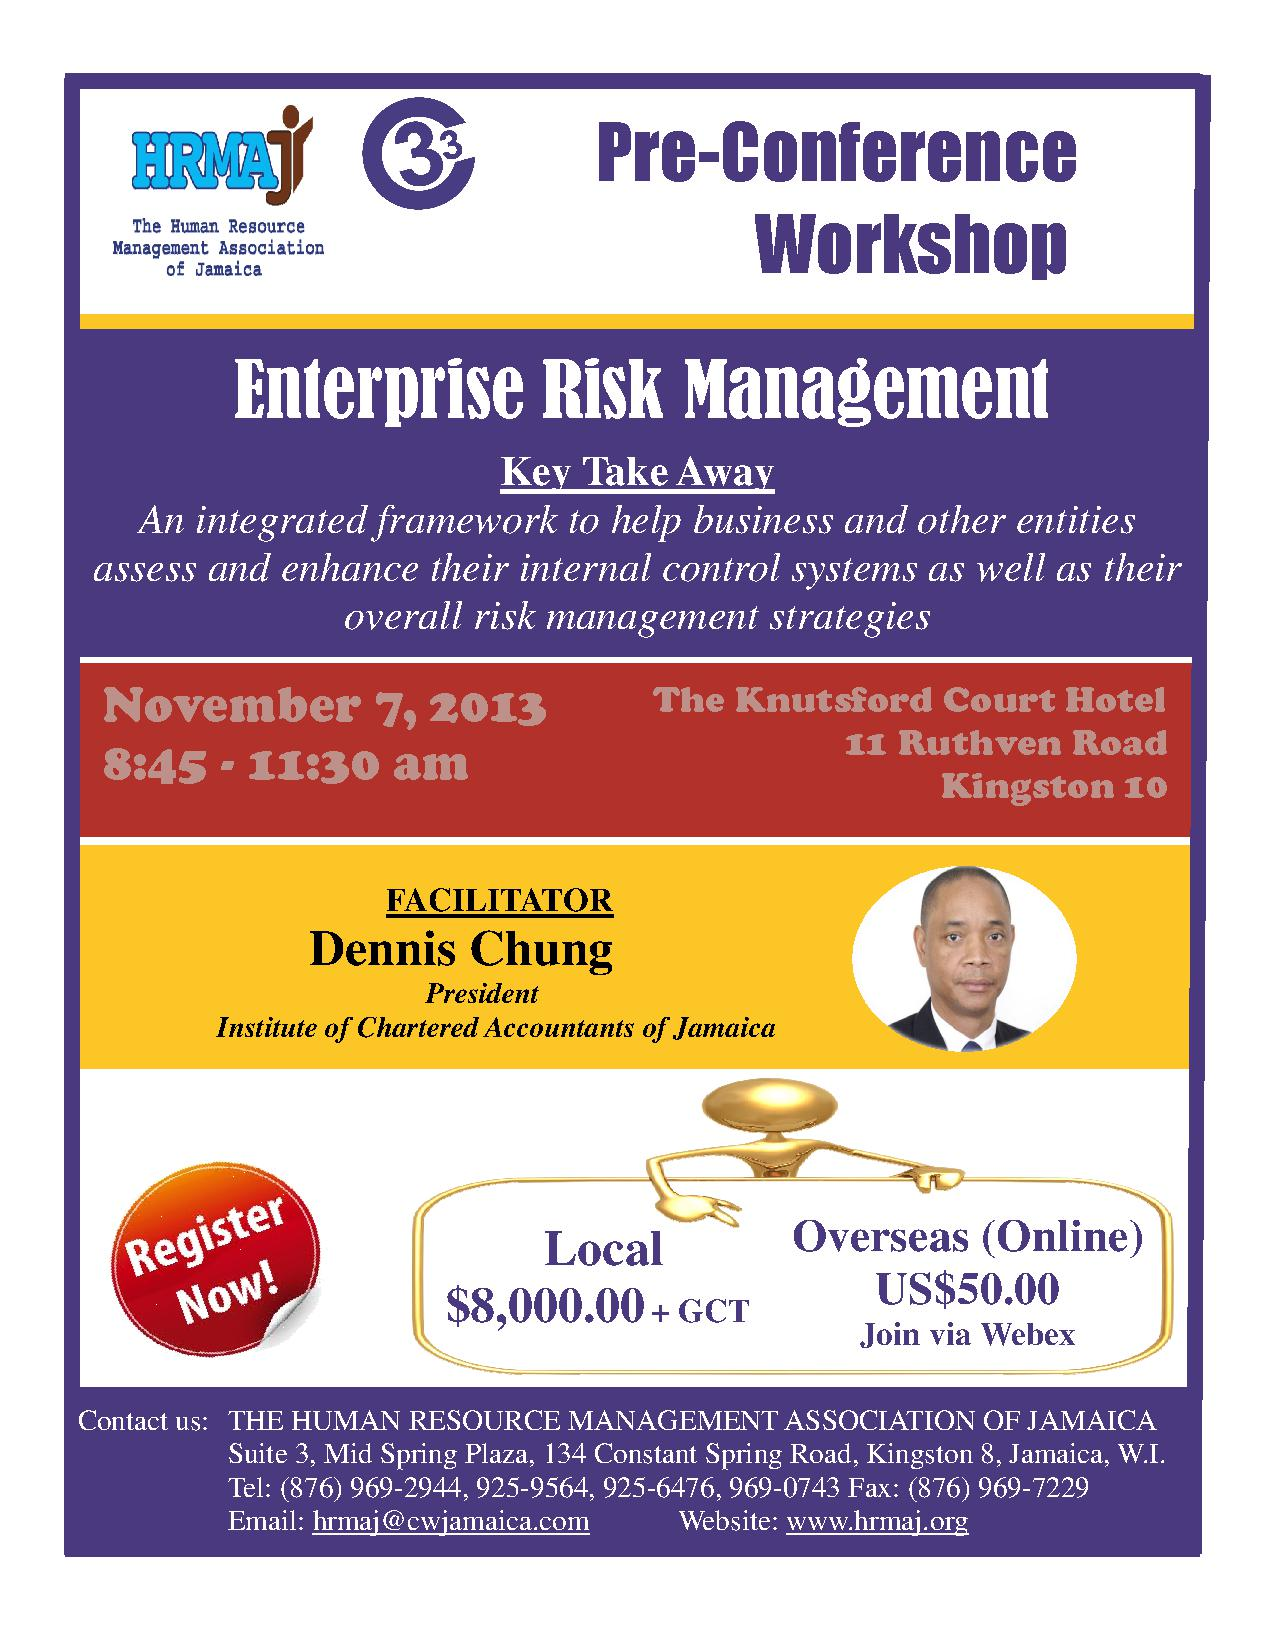 Pre-Conference Workshop - Enterprise Risk Management